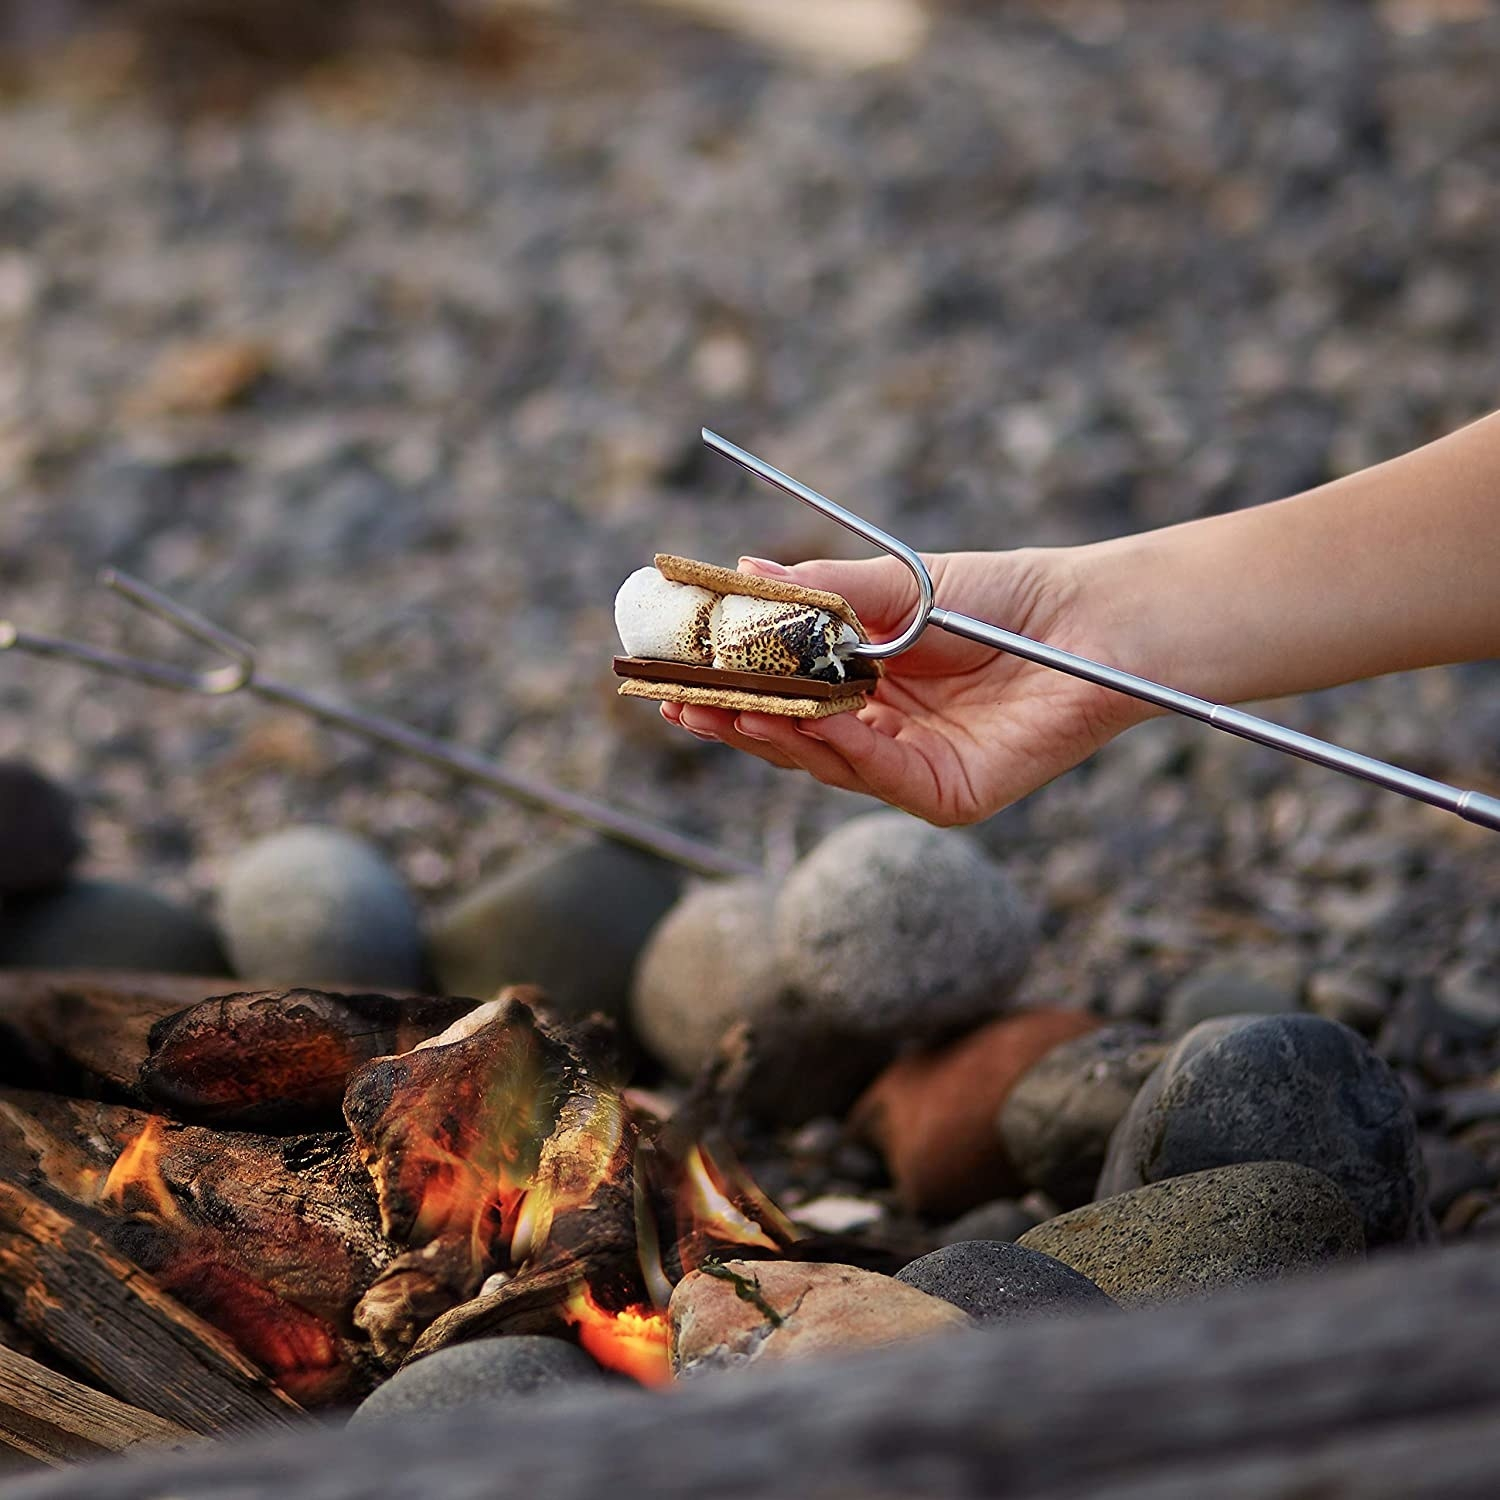 person putting marshmallows from the skewer into a smore